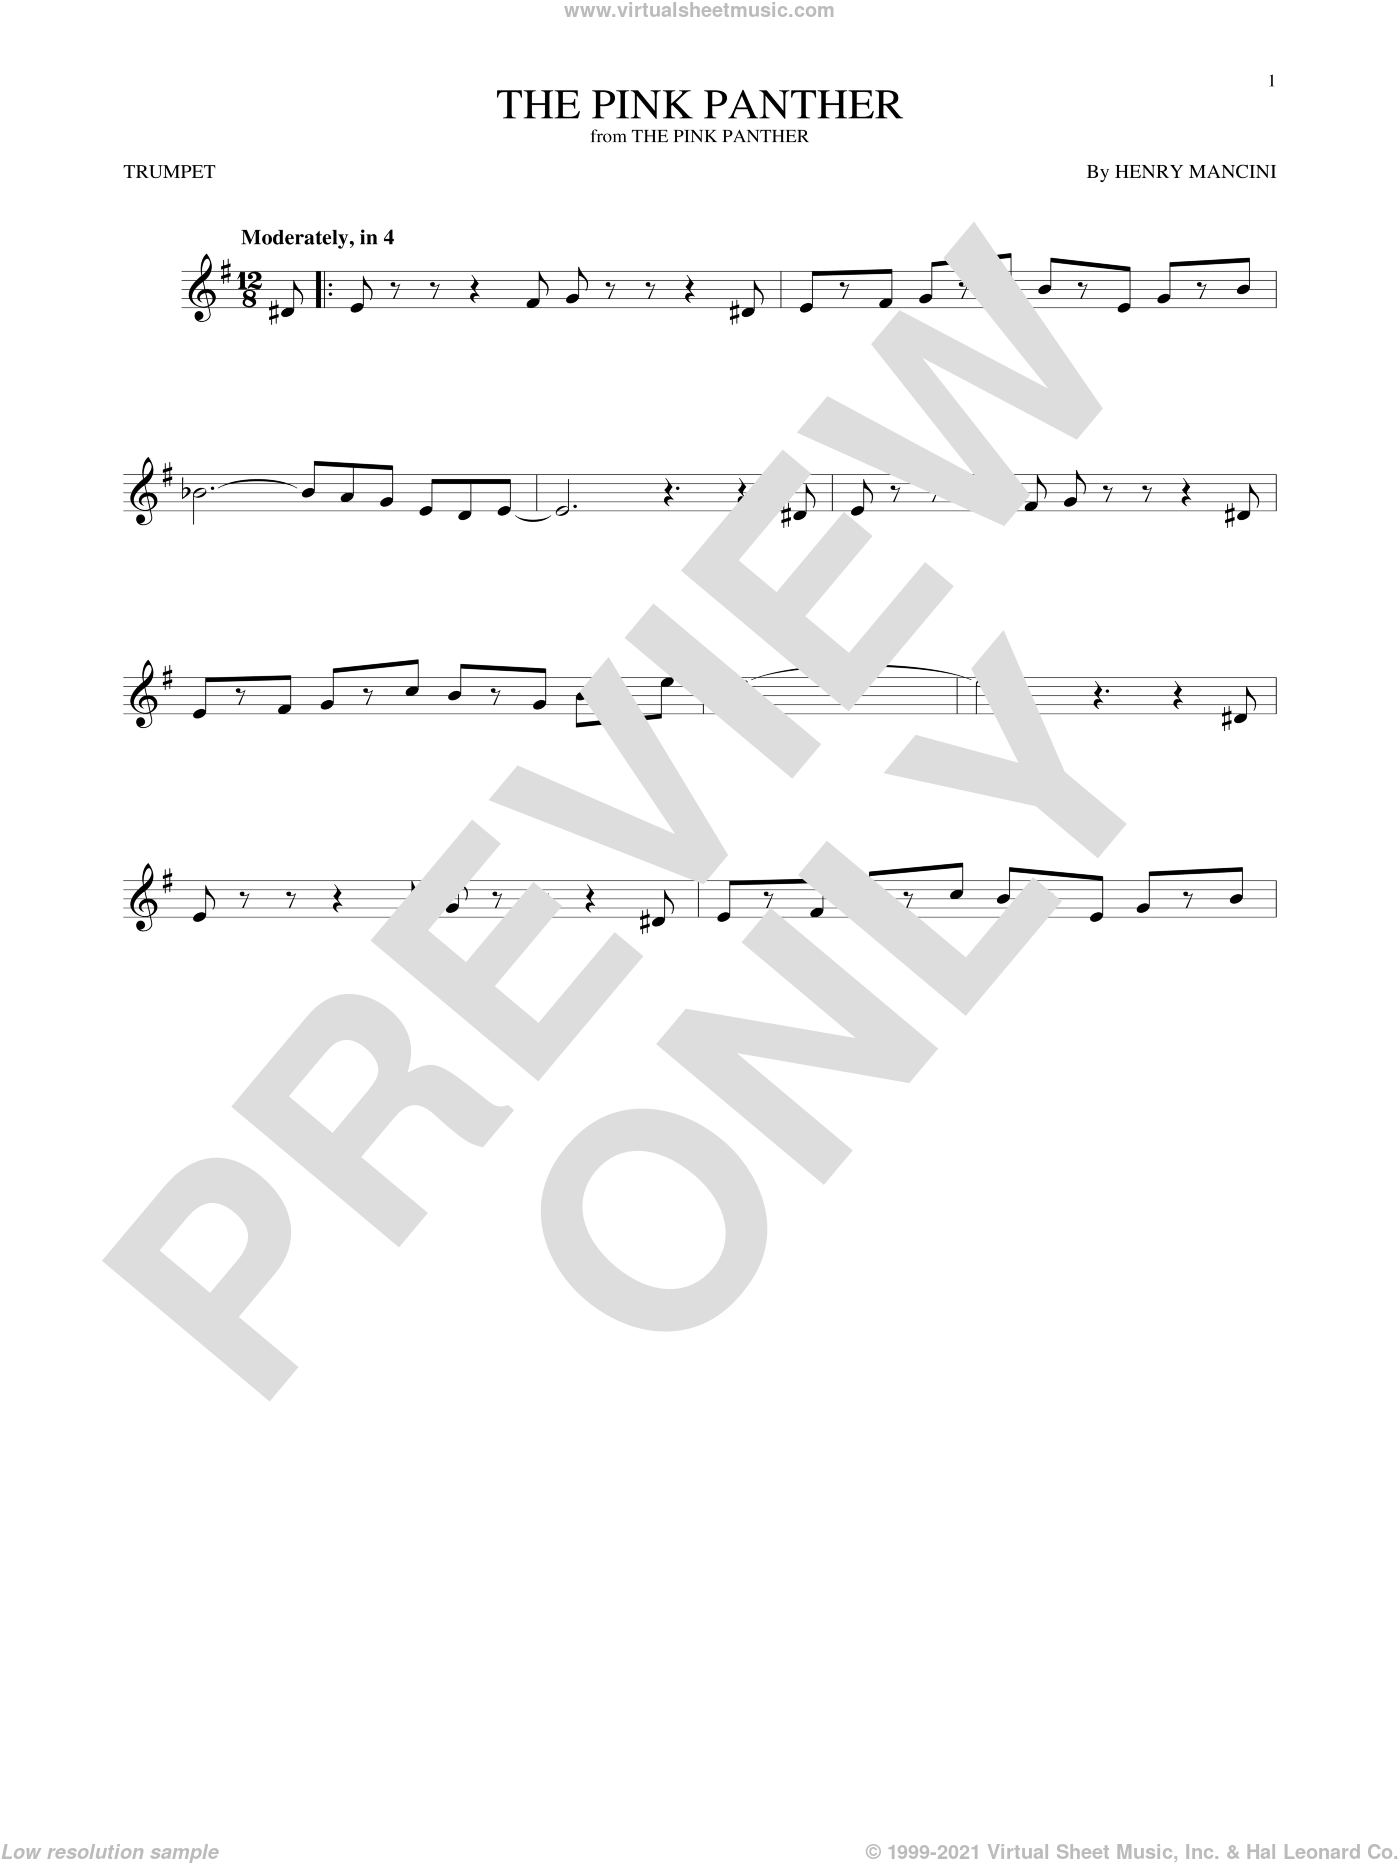 The Pink Panther sheet music for trumpet solo by Henry Mancini, intermediate skill level